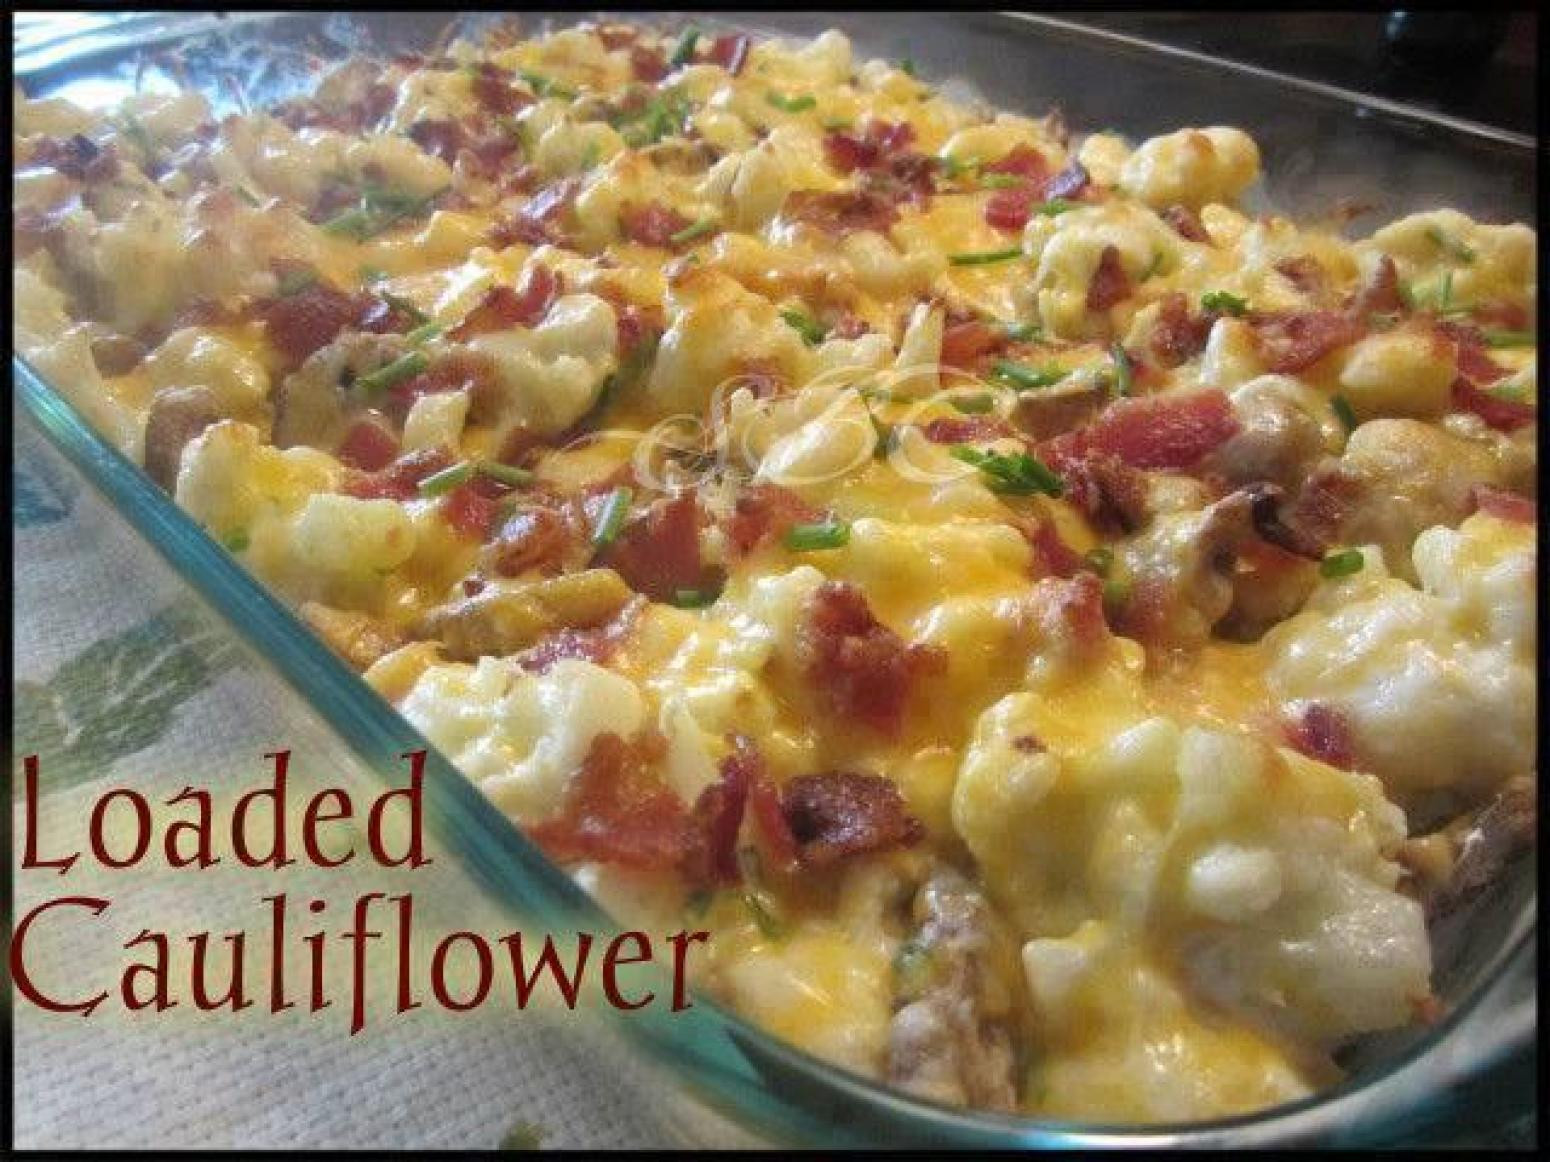 Low Carb Cauliflower Recipes  Loaded Cauliflower and it s low carb Recipe